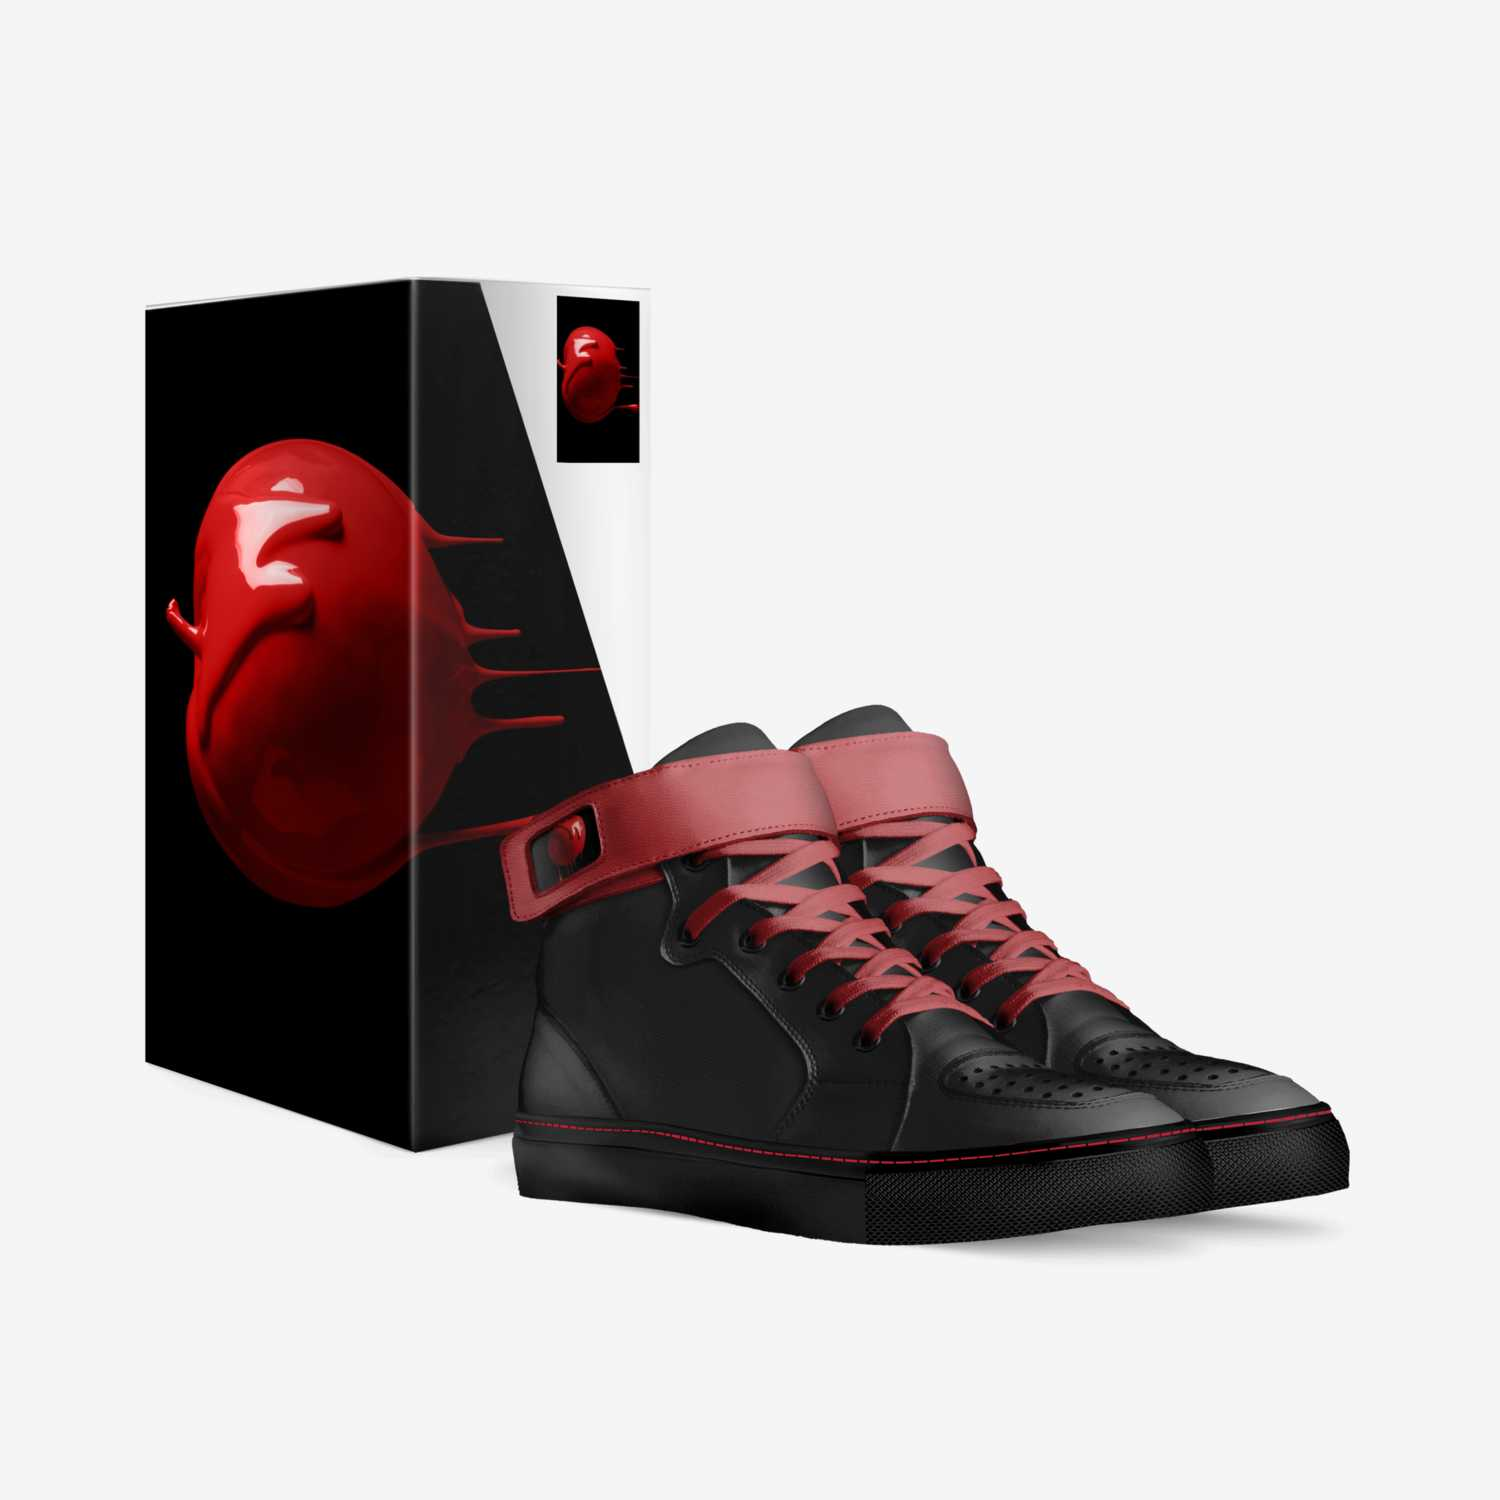 DrRiP custom made in Italy shoes by Corey Boggess | Box view